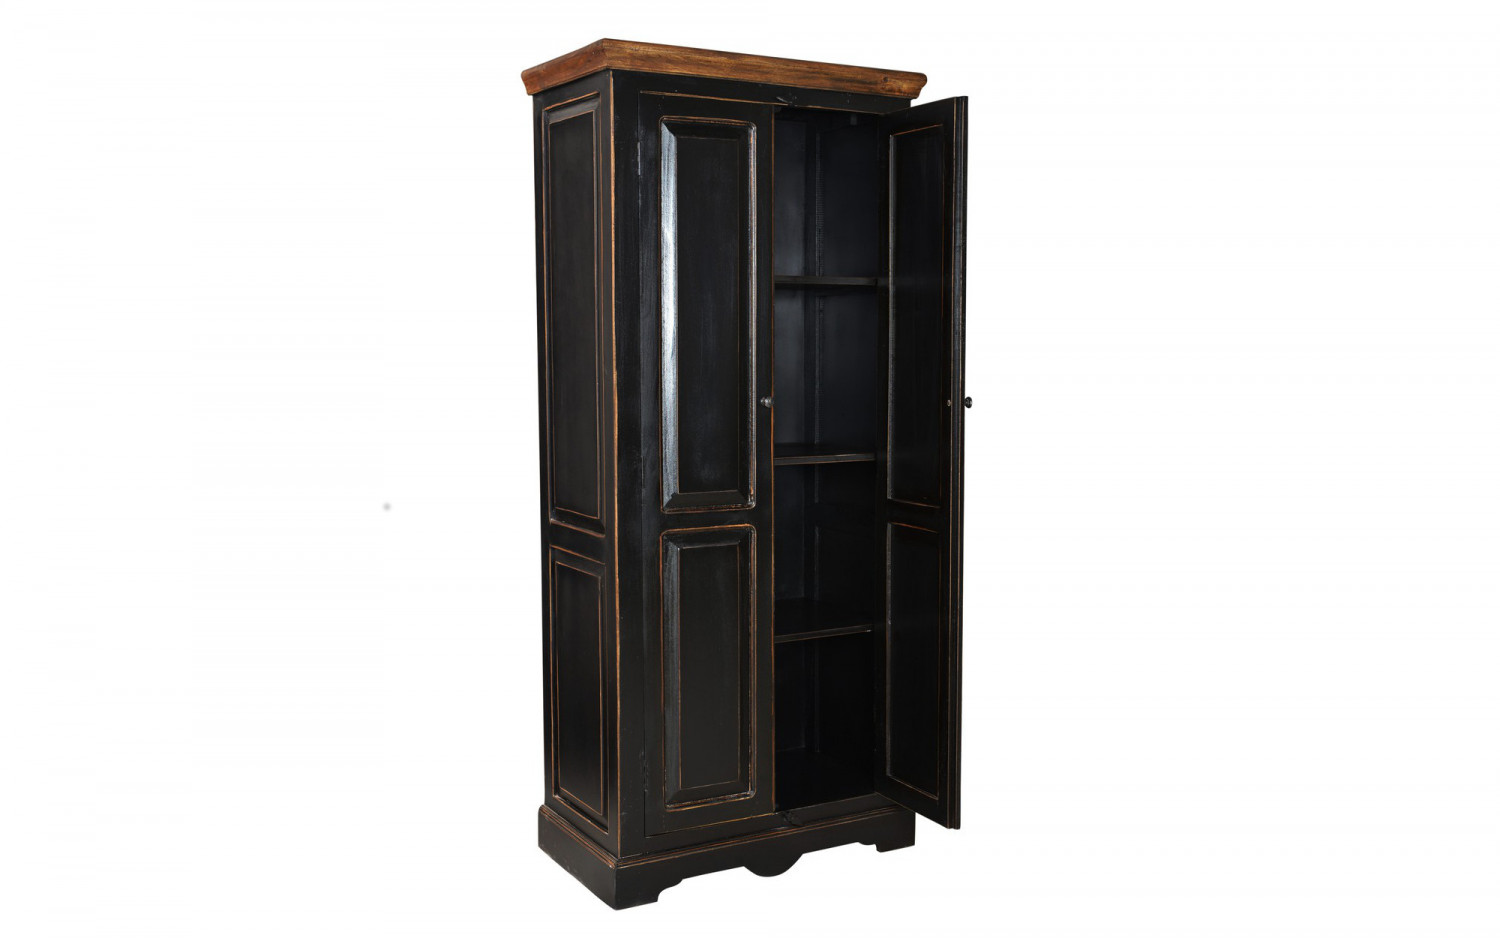 excl baidani designer schrank ebony breite 80cm mediterraner antik look schwarz baidani shop. Black Bedroom Furniture Sets. Home Design Ideas